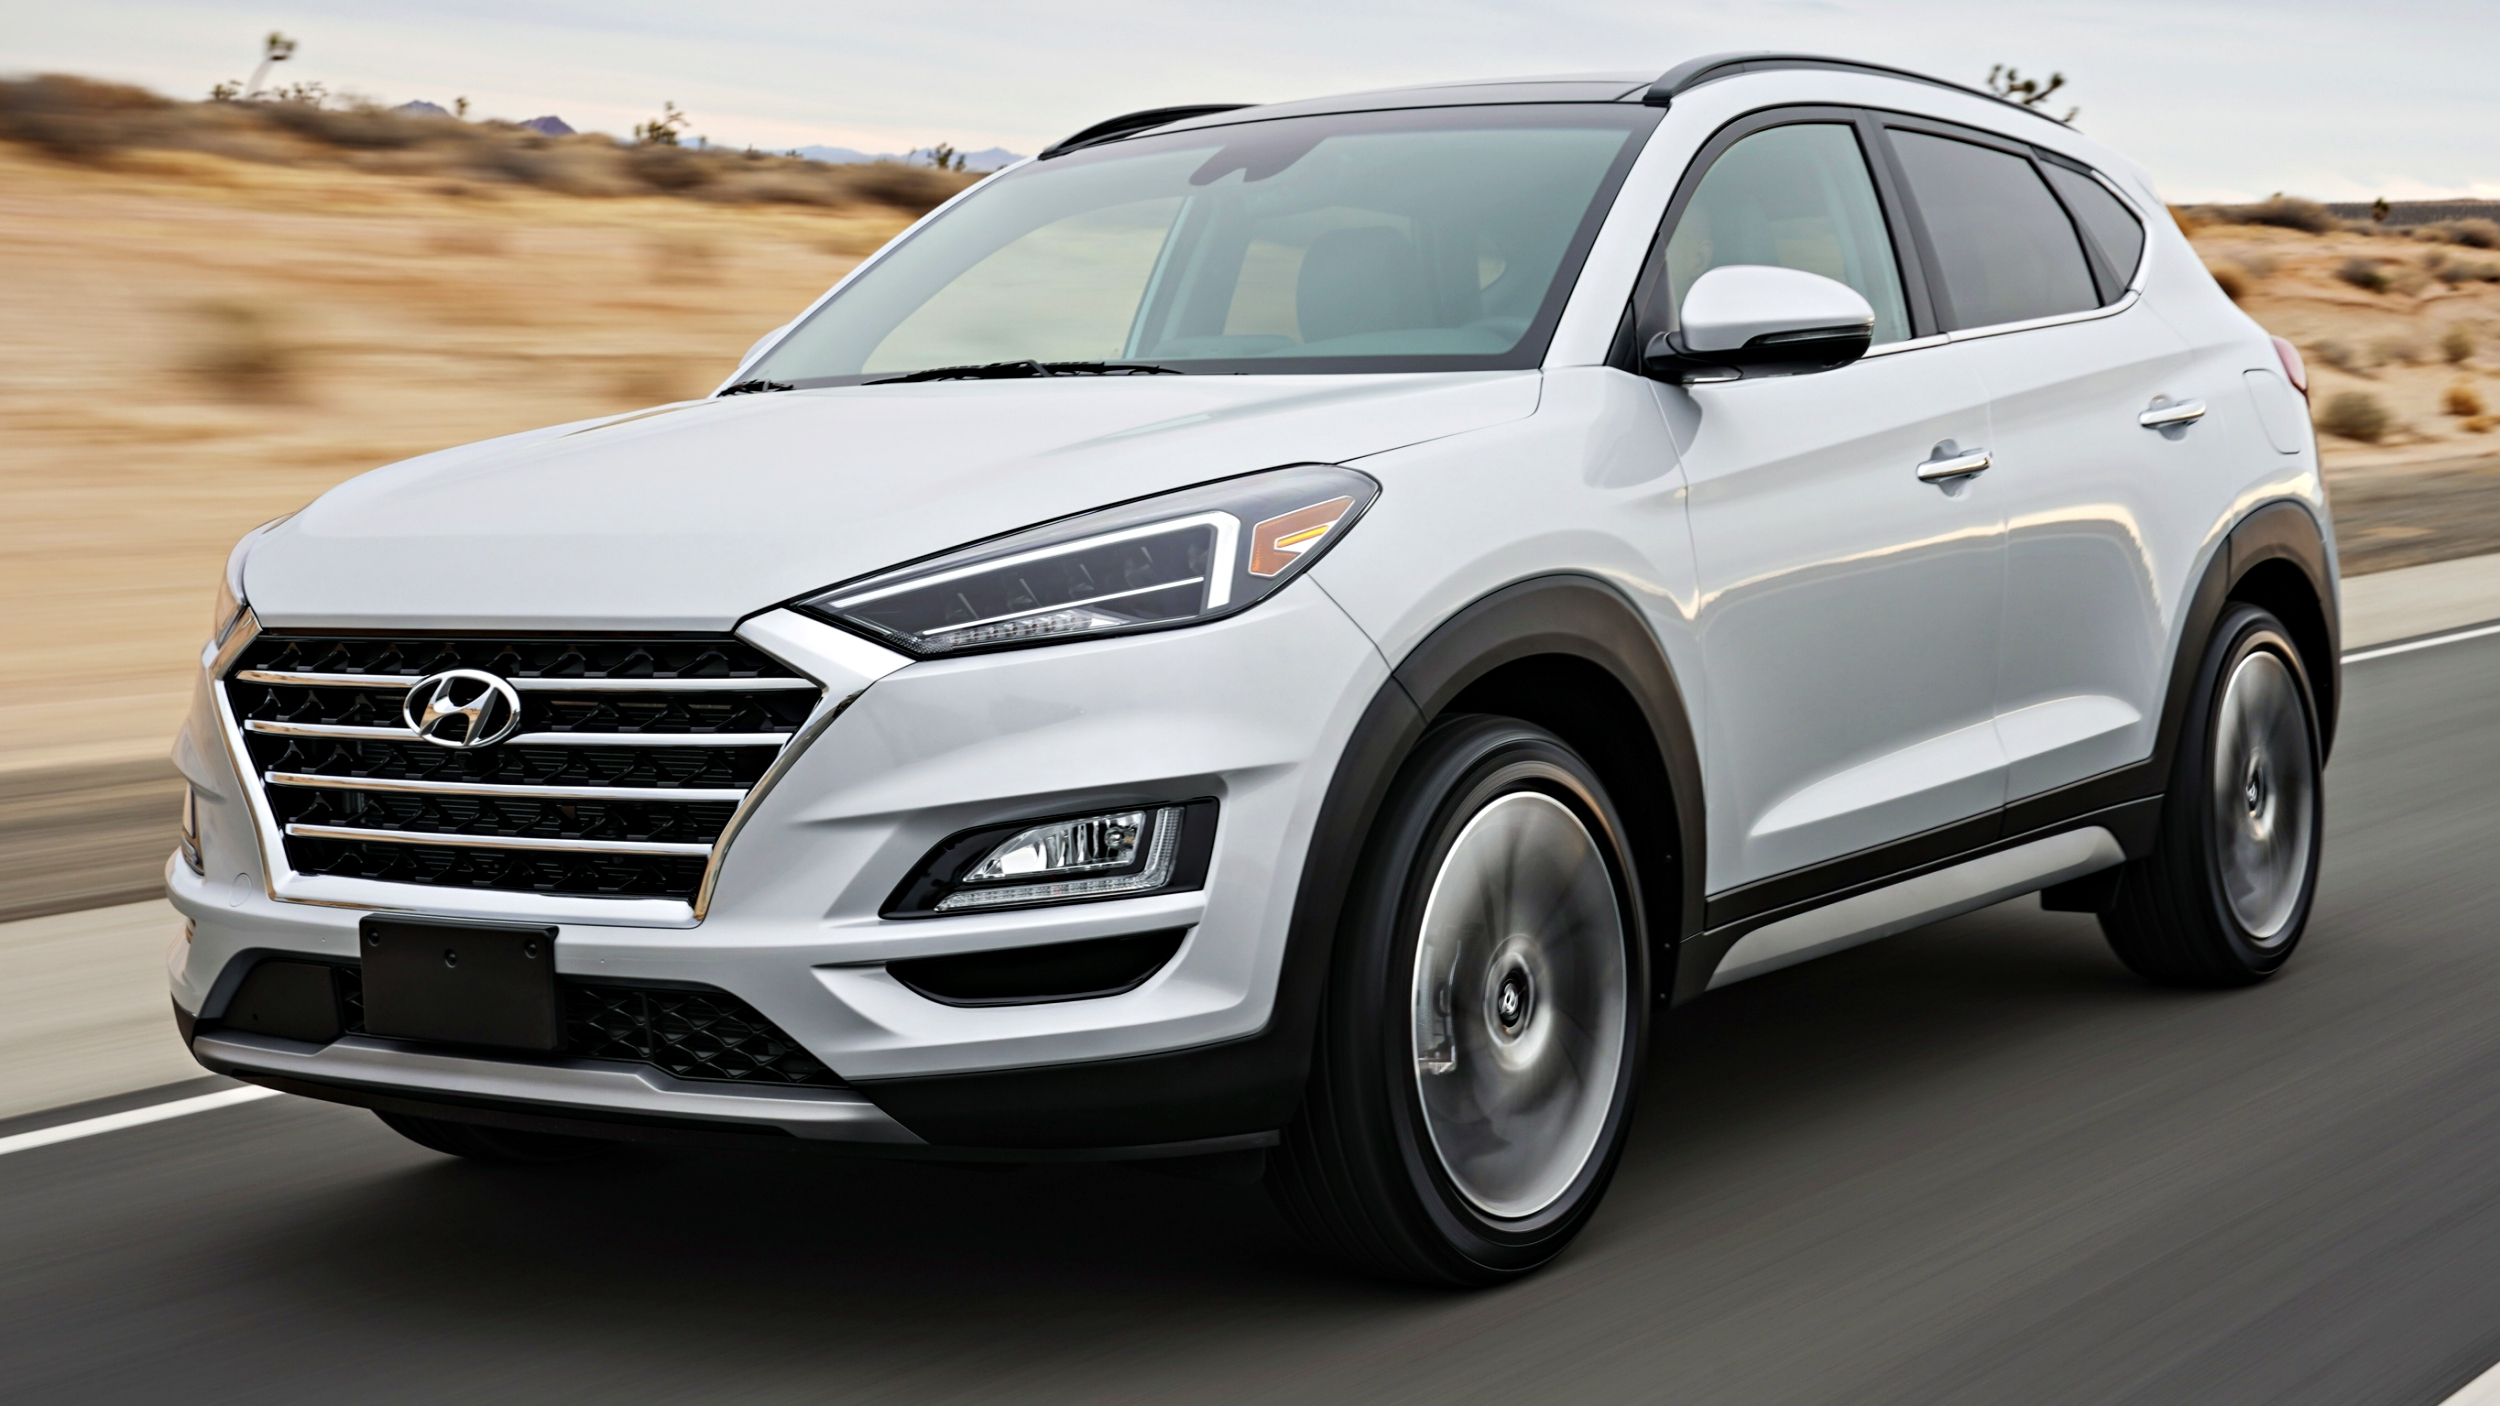 News 2019 Hyundai Tucson Arrives On The Scene